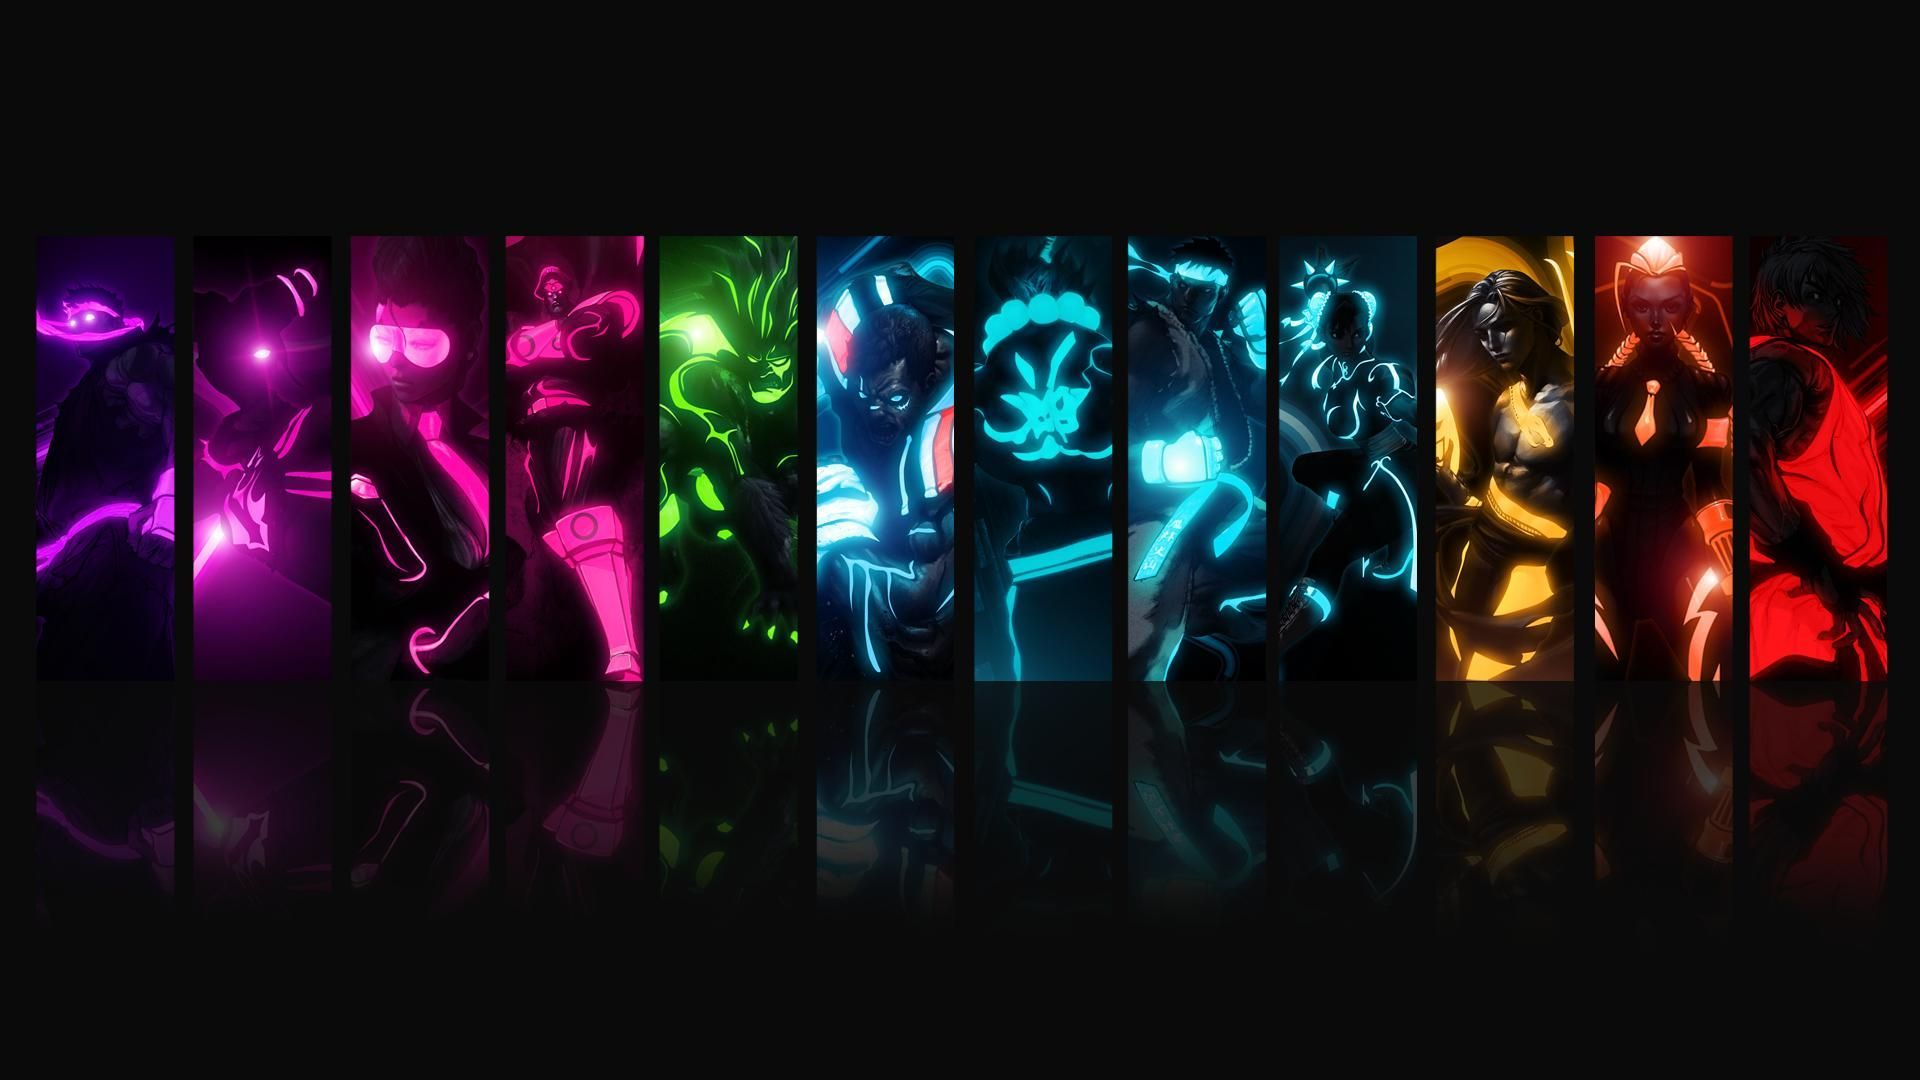 1920x1080 Pin by crystal . on bright colors | Wallpaper, Cool anime wallpapers ...